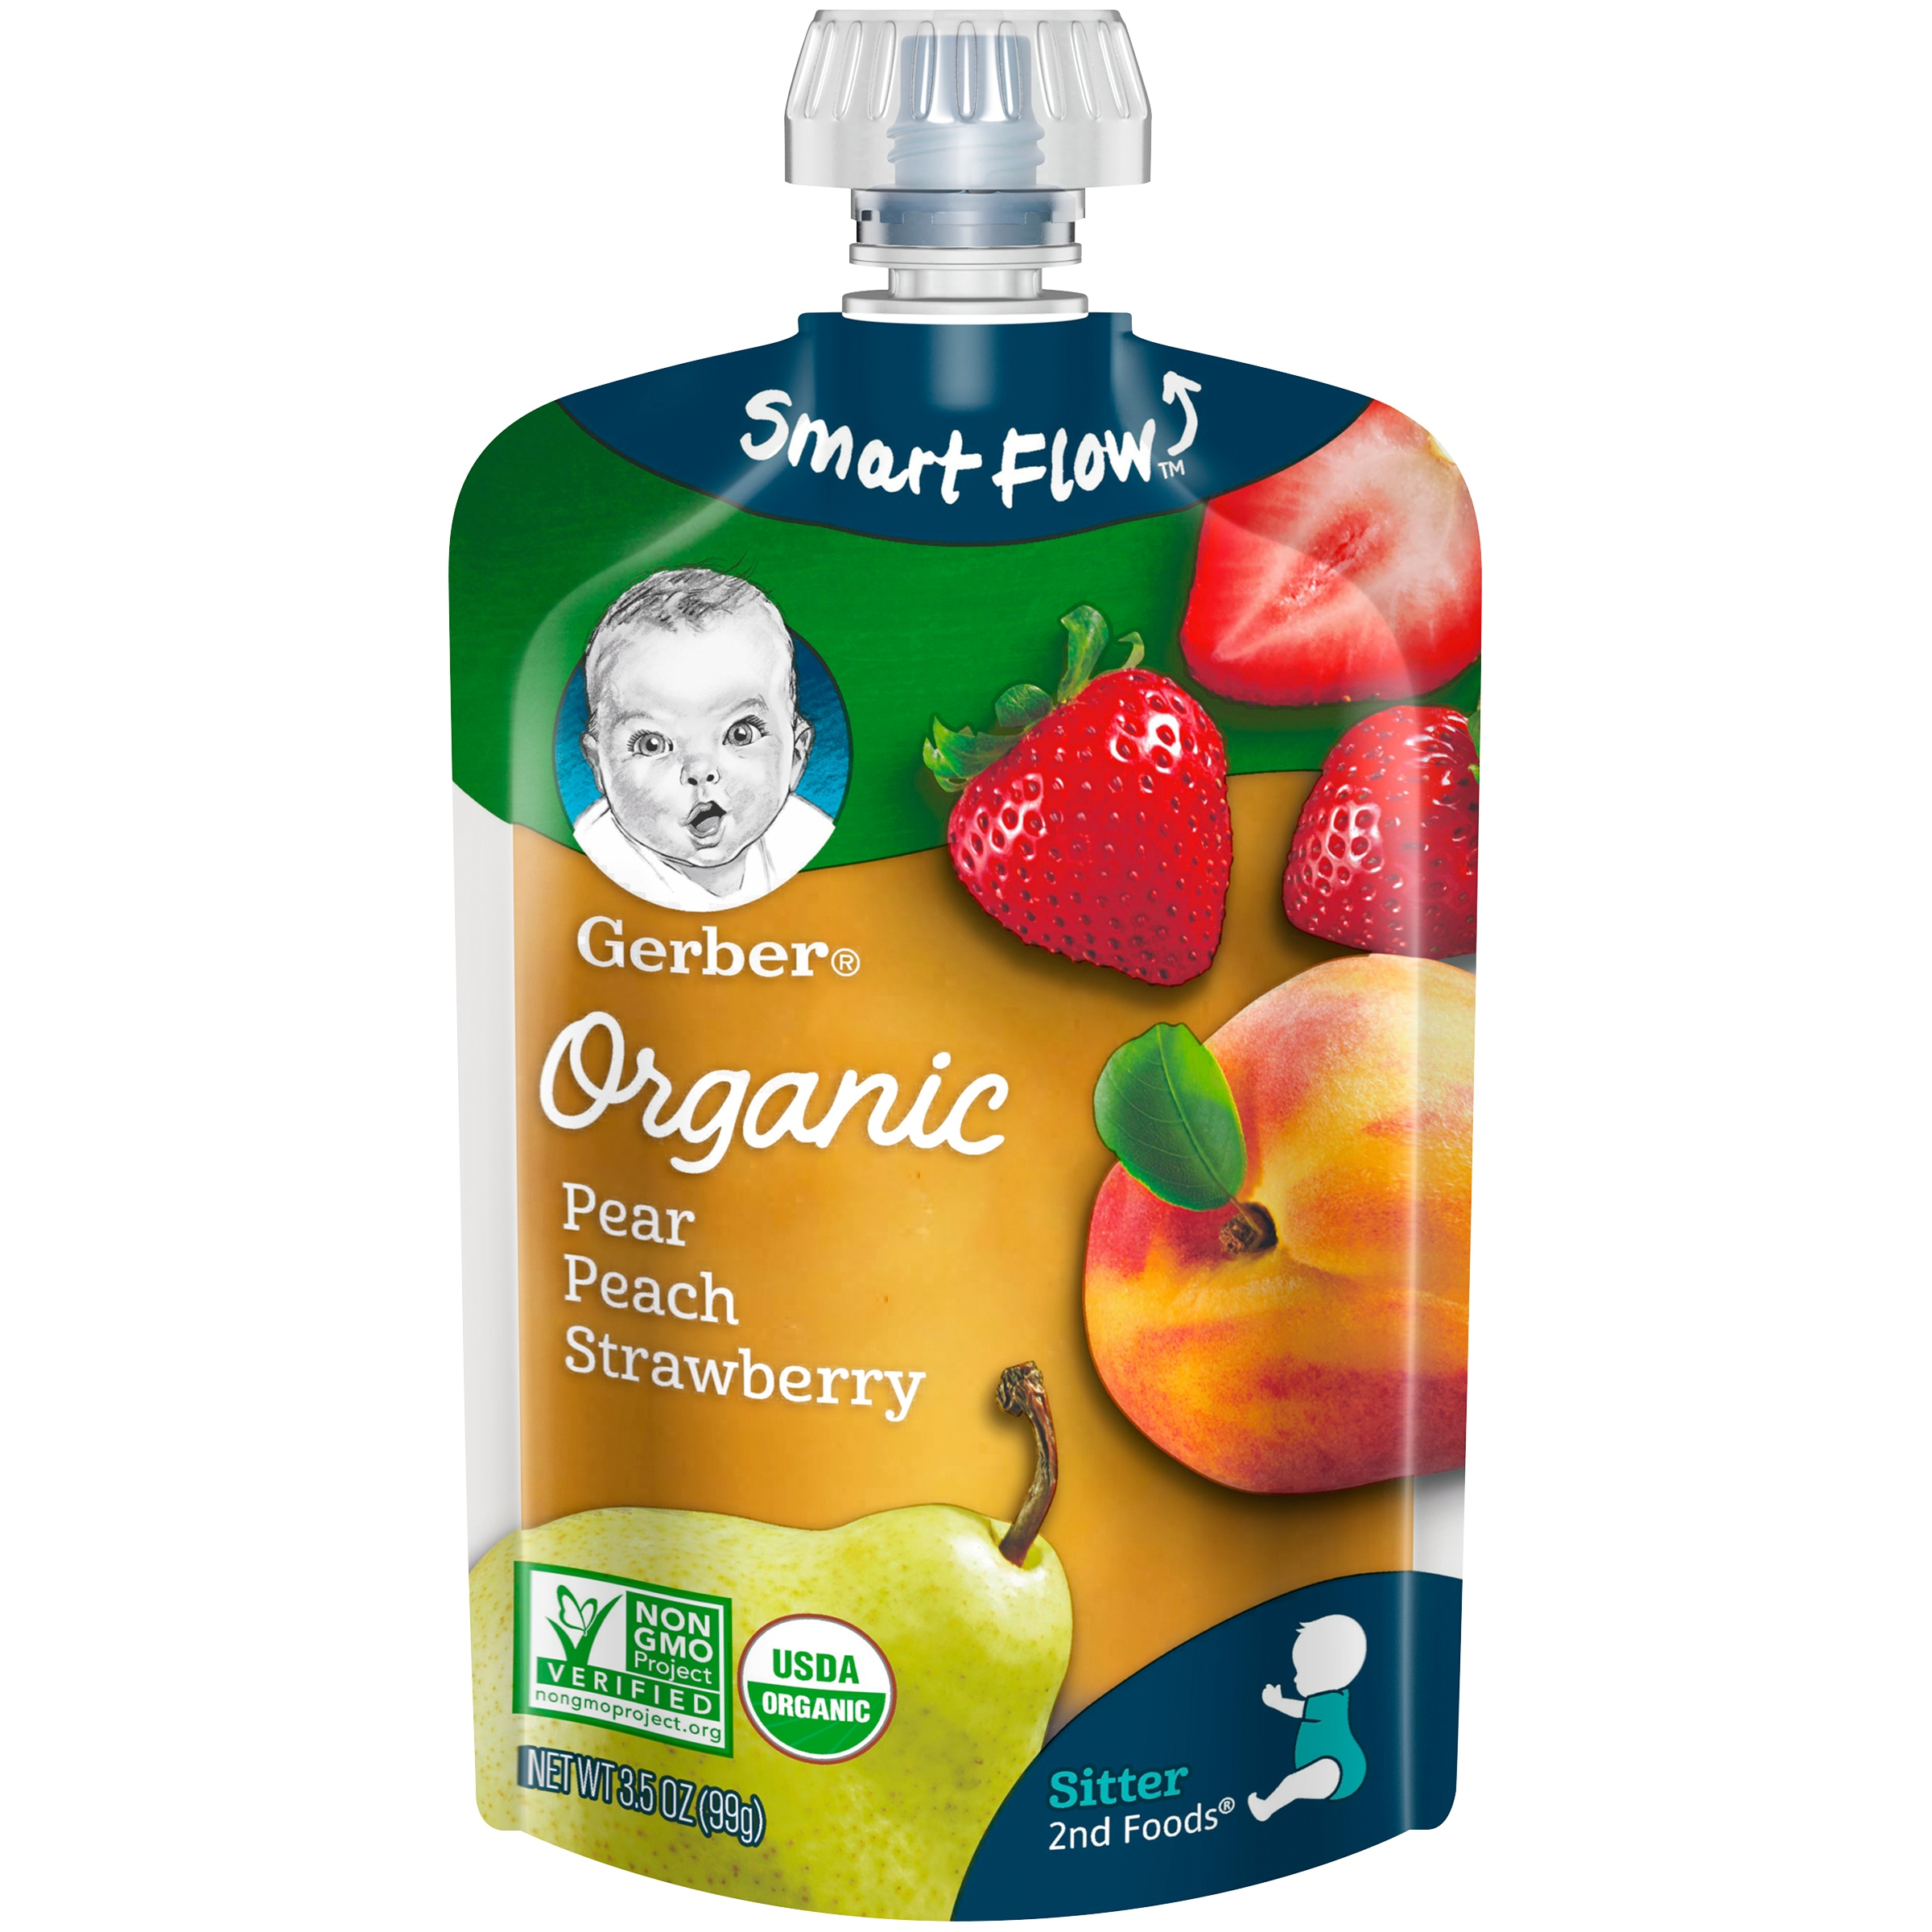 Gerber Organic 2nd Foods Baby Food, Pear Peach Strawberry, 3.5 oz Pouch (Pack of 12)